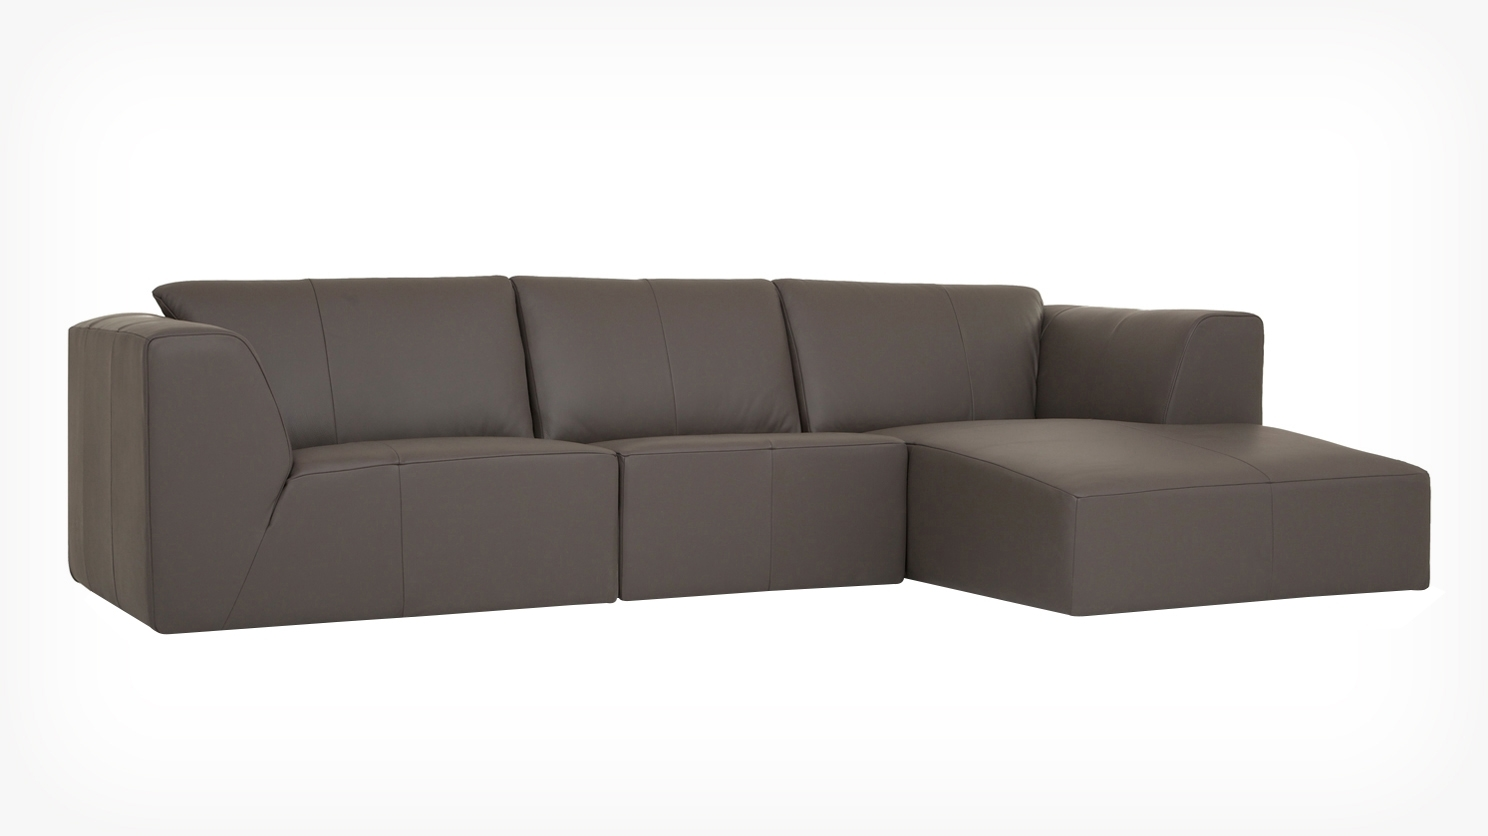 Eq3 | Morten 3 Piece Sectional Sofa With Chaise – Leather Inside Eq3 Sectional Sofas (Image 5 of 10)